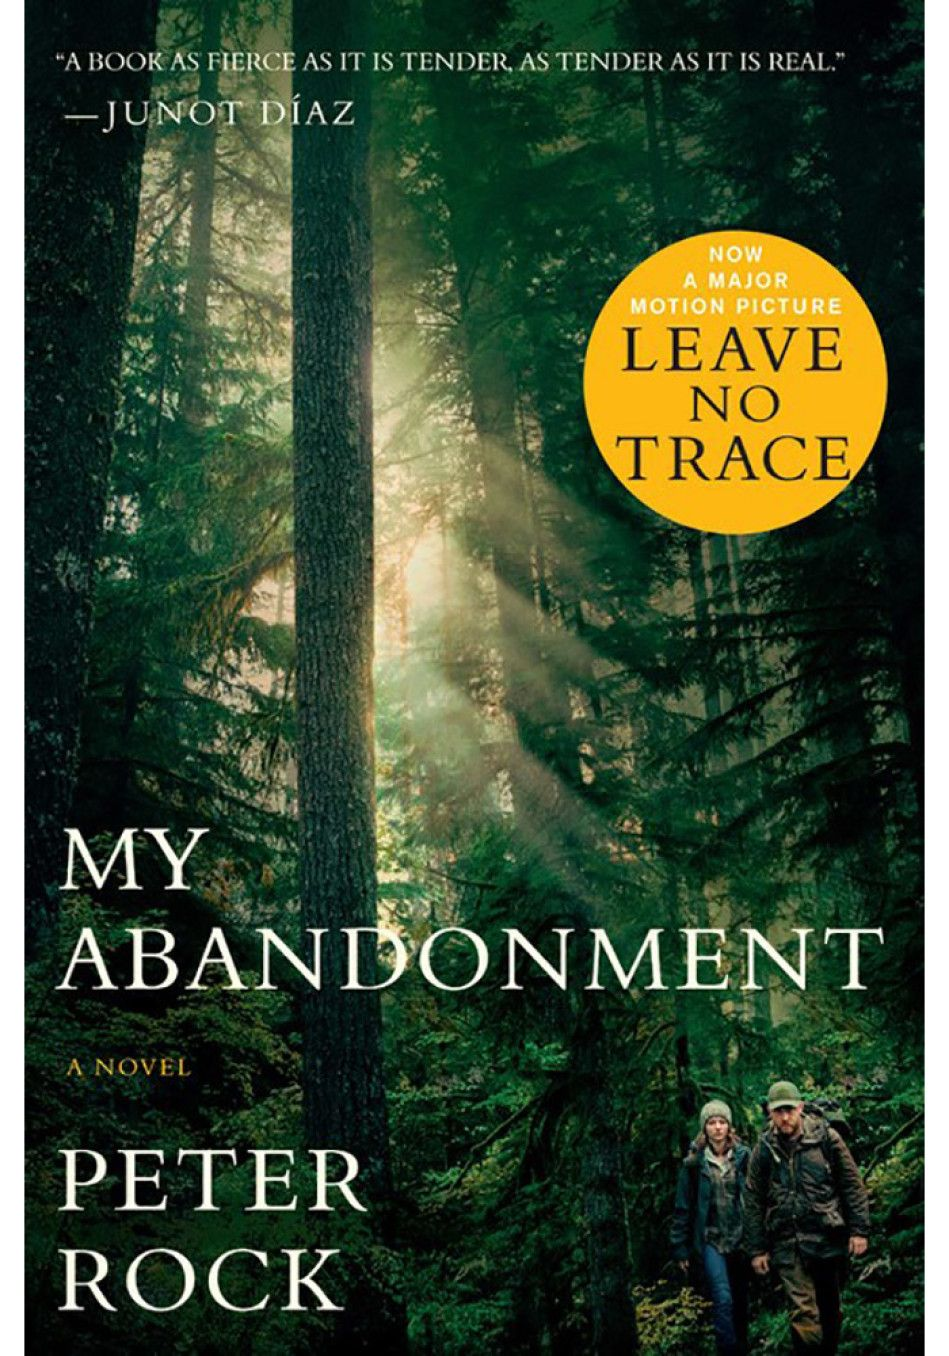 Summer movie books my abandonment reads pinterest movie and books summer movie books my abandonment fandeluxe Choice Image